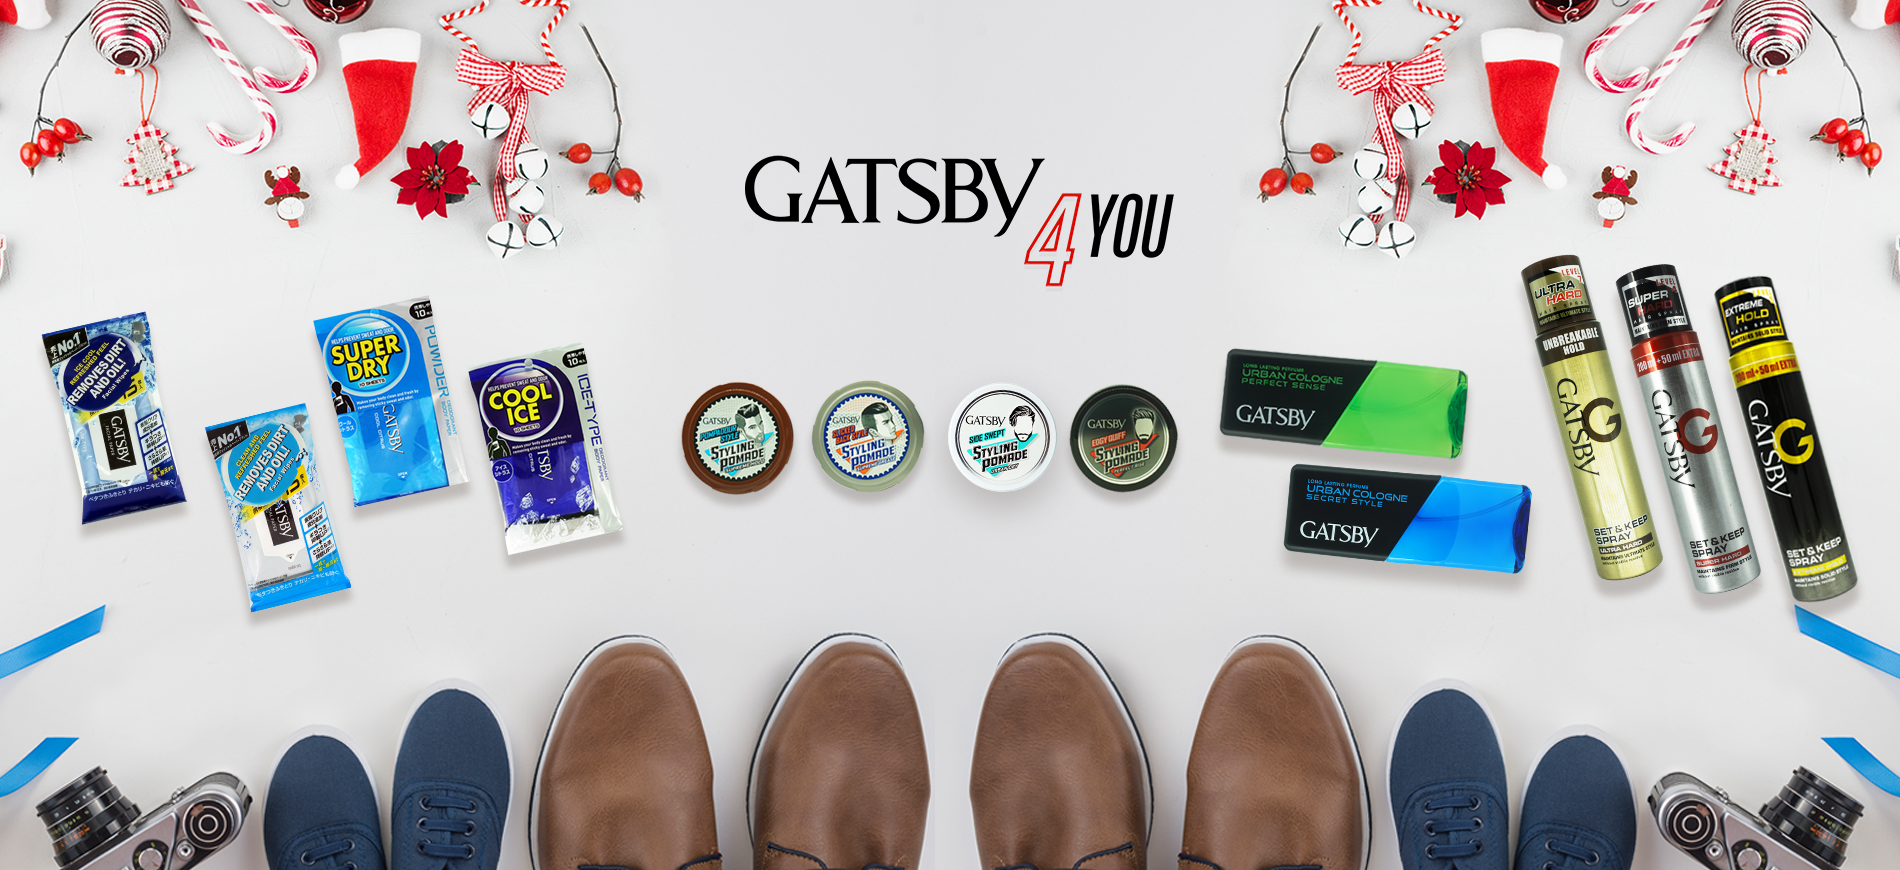 GATSBY4You product highlights banner